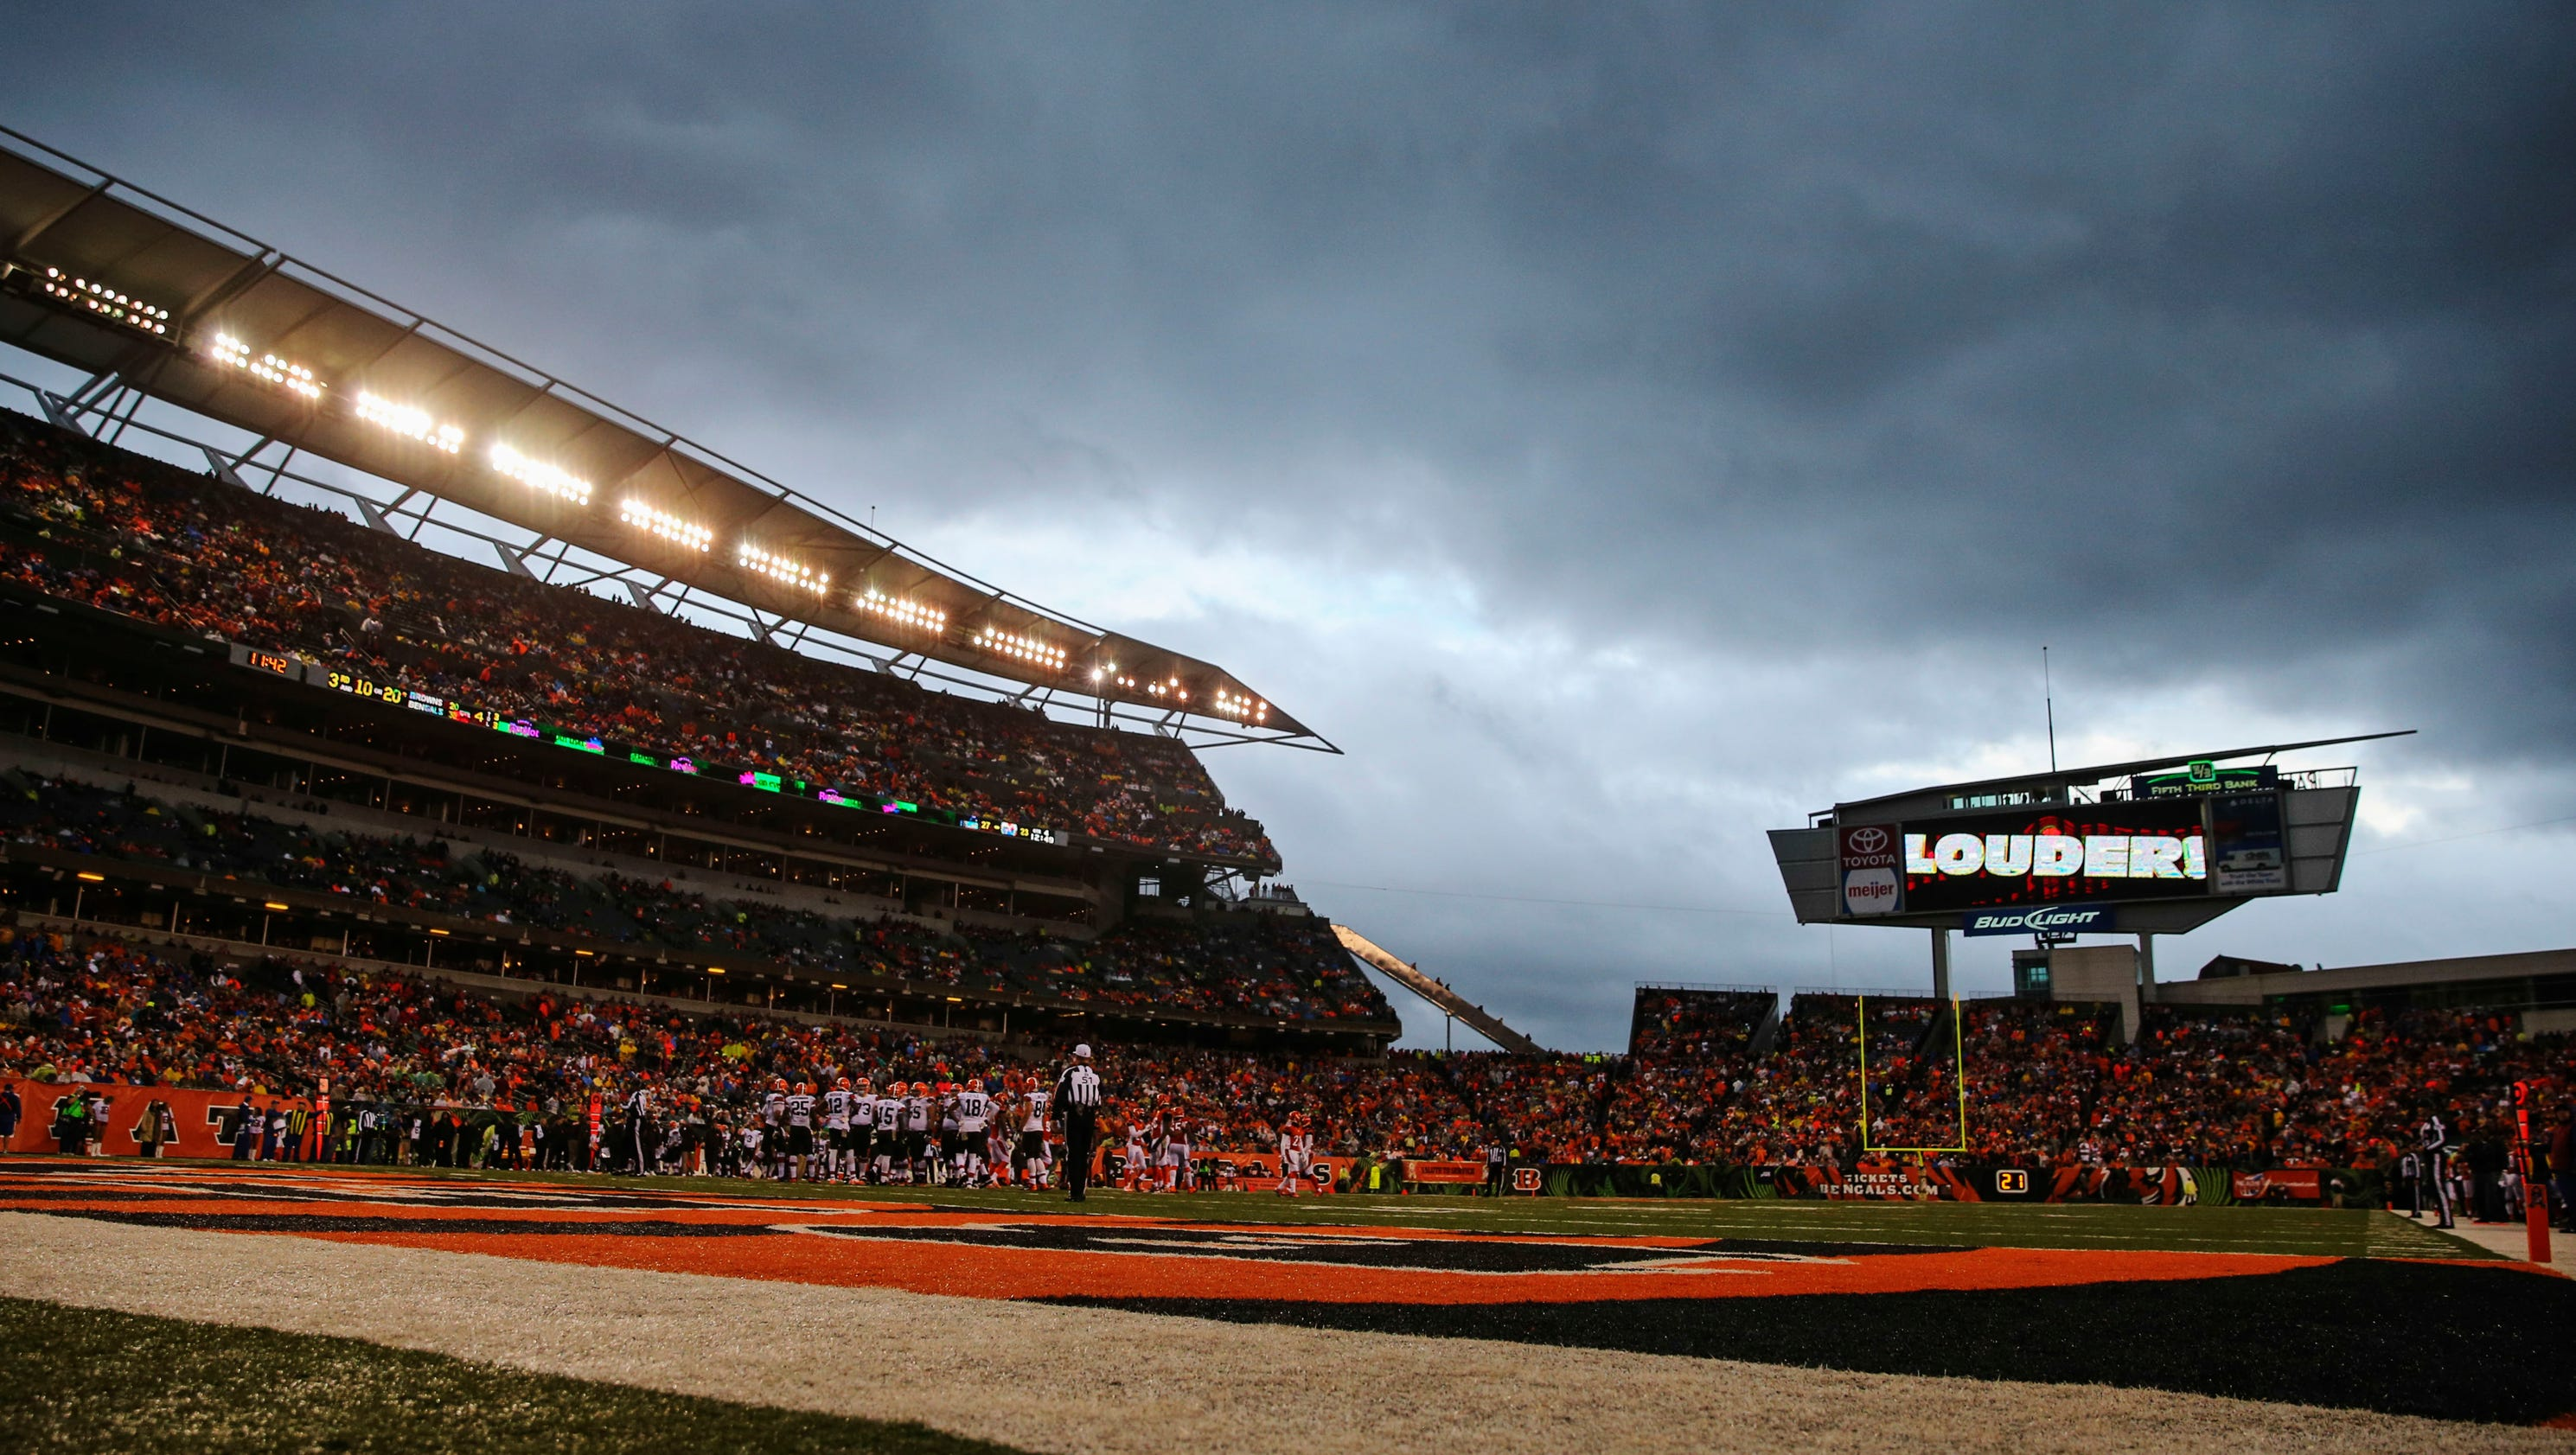 636281335133894159-usp-nfl-cleveland-browns-at-cincinnati-bengals